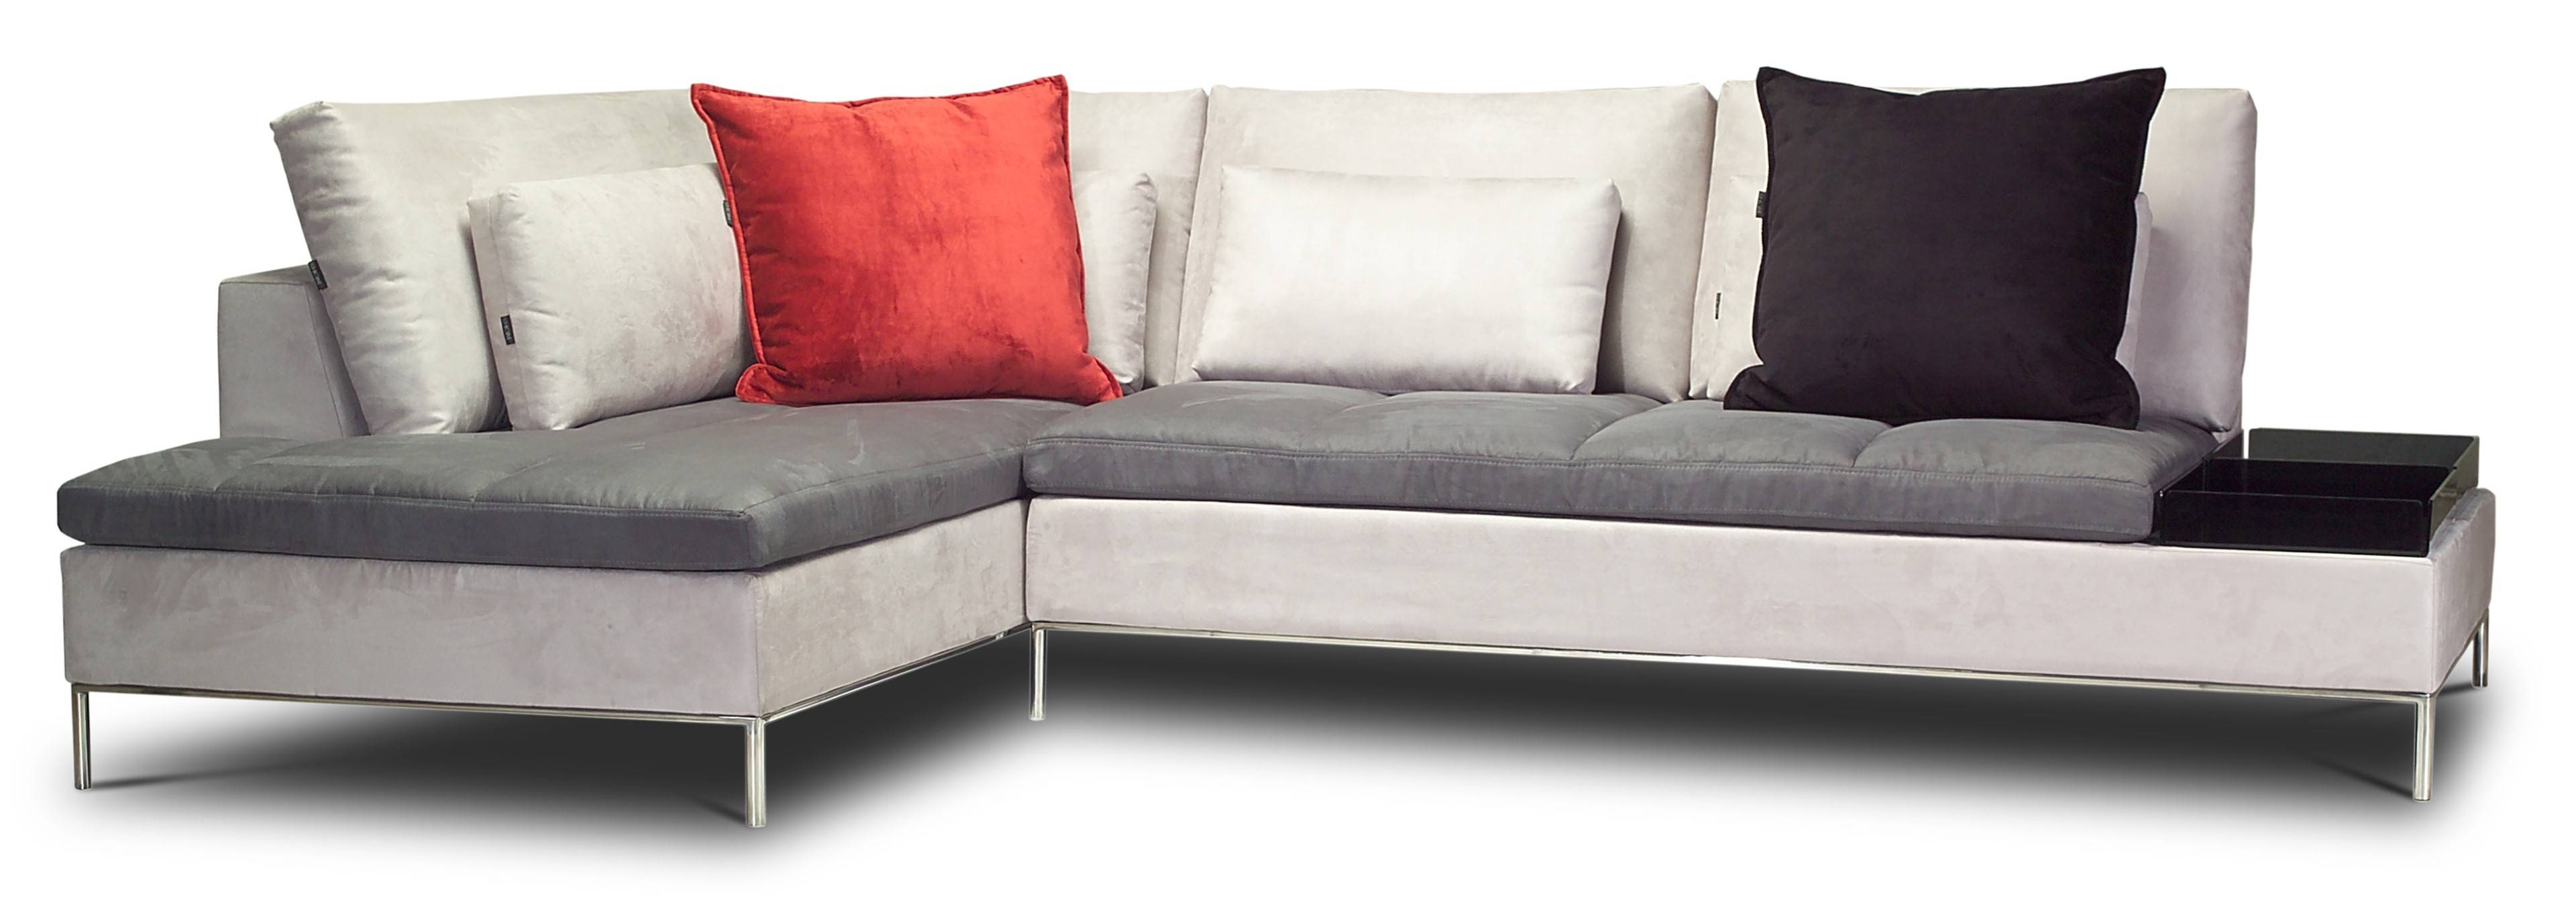 Cream Color L Shaped Sectional Couch With Gray Leather Cushion And for Small L-Shaped Sectional Sofas (Image 5 of 15)